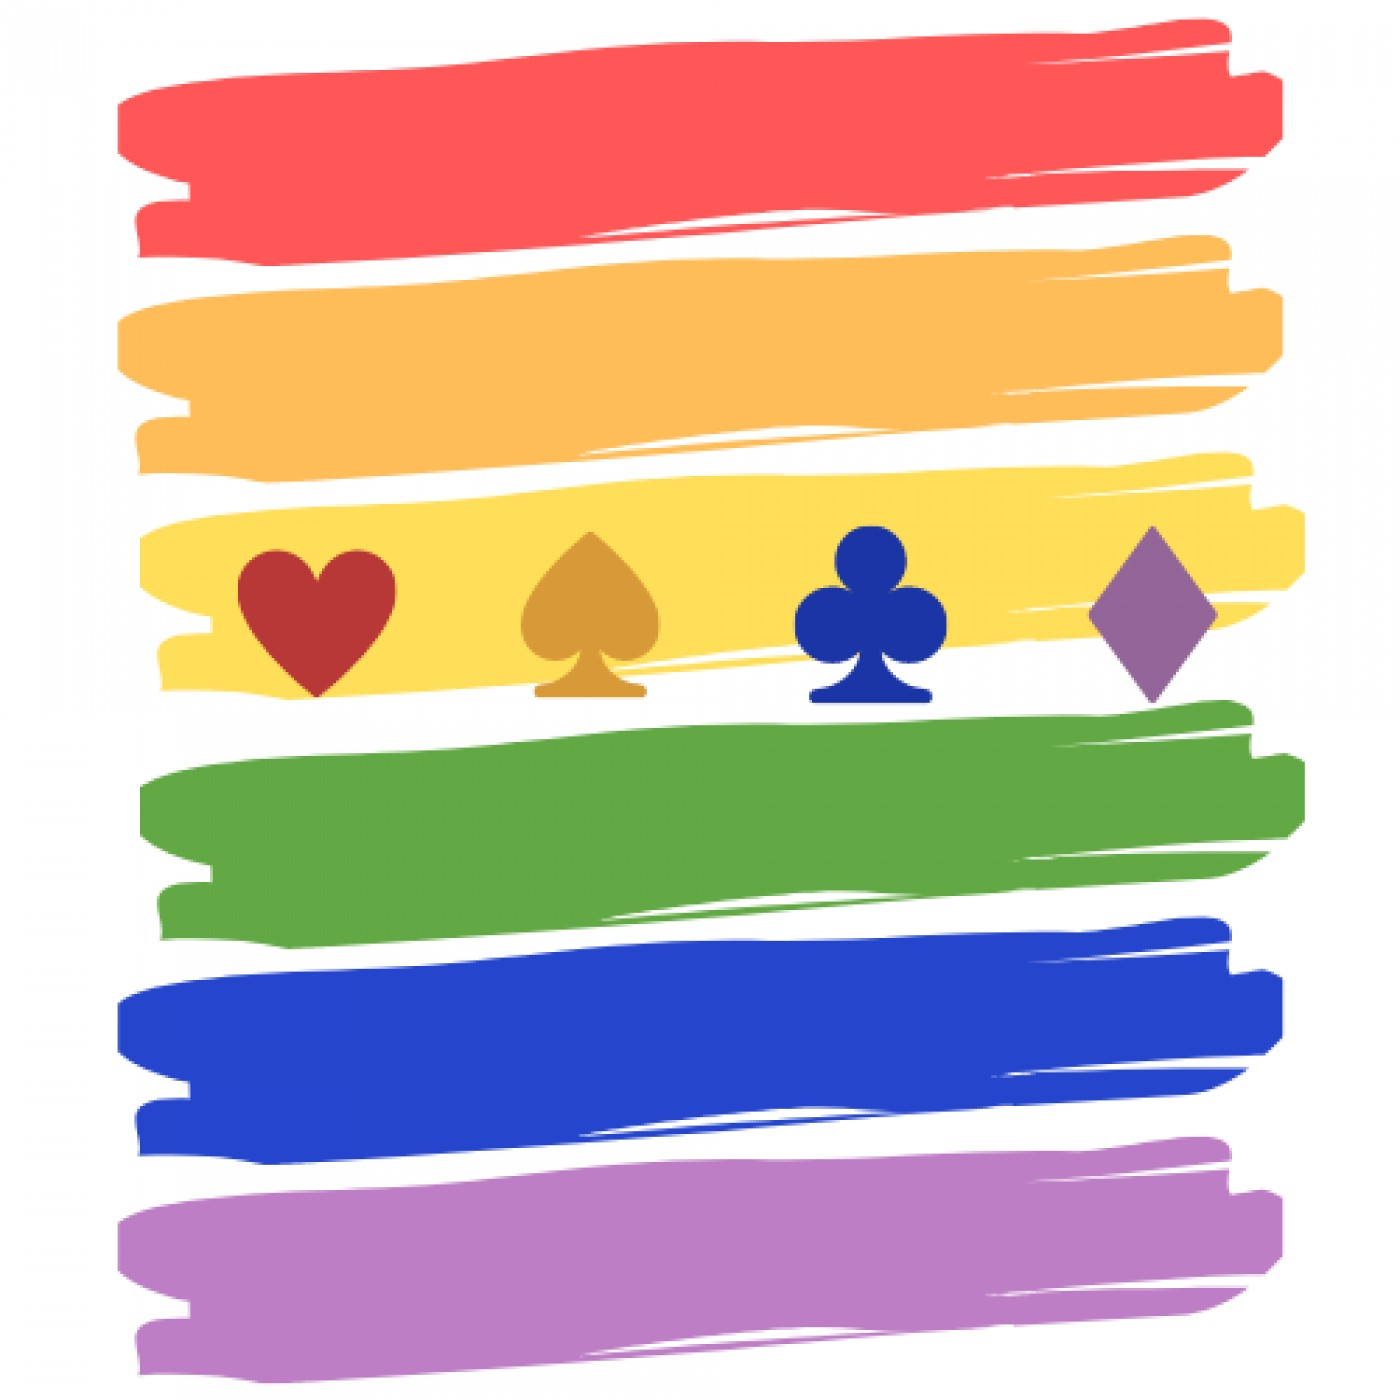 House of Cards: An LGBT Podcast: Intersex